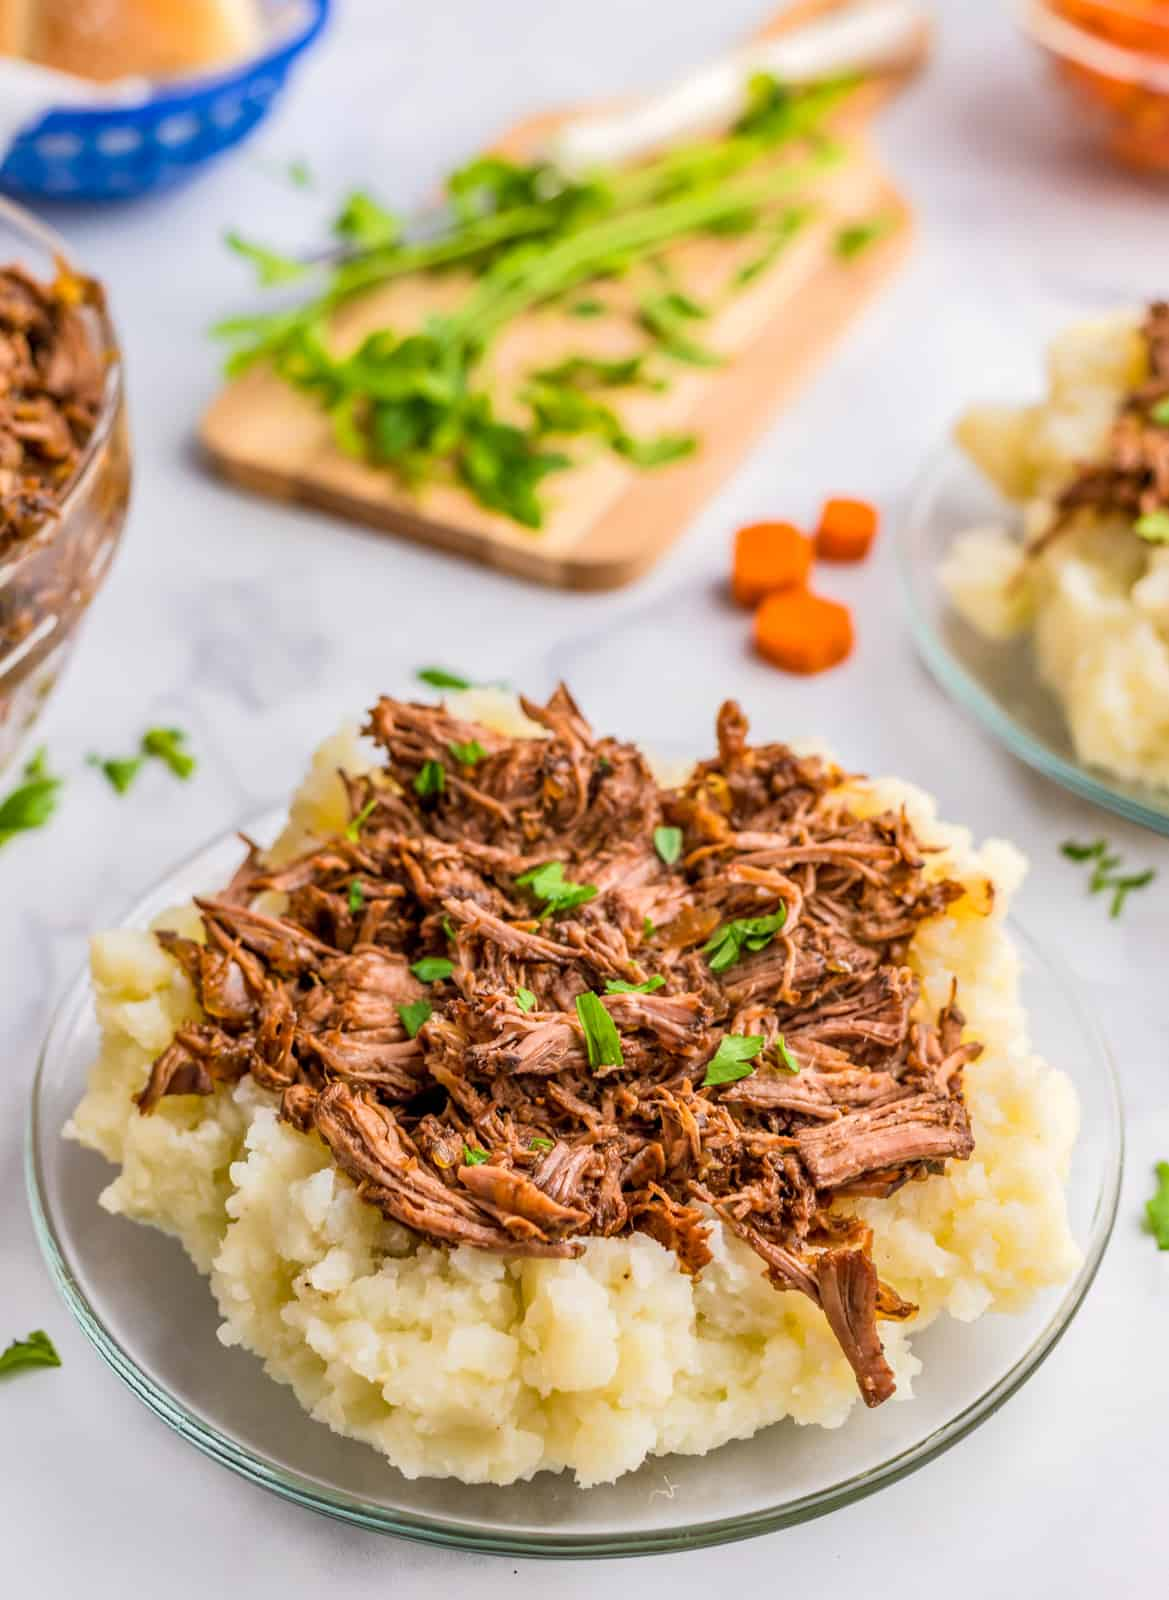 Close up of Slow Cooker Beef Short Ribs over mashed potatoes topped with parsley